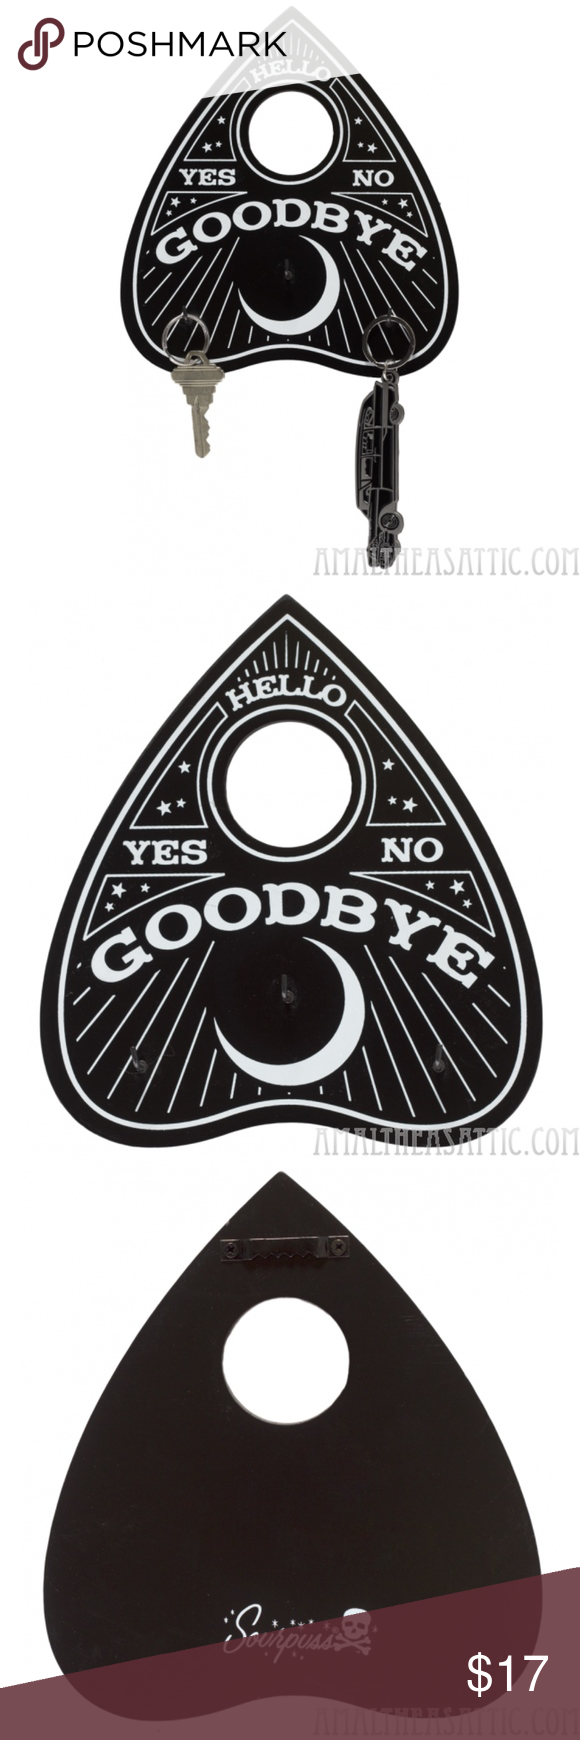 Ouija Board Planchette Key Holder Key Holder Planchette Things To Sell